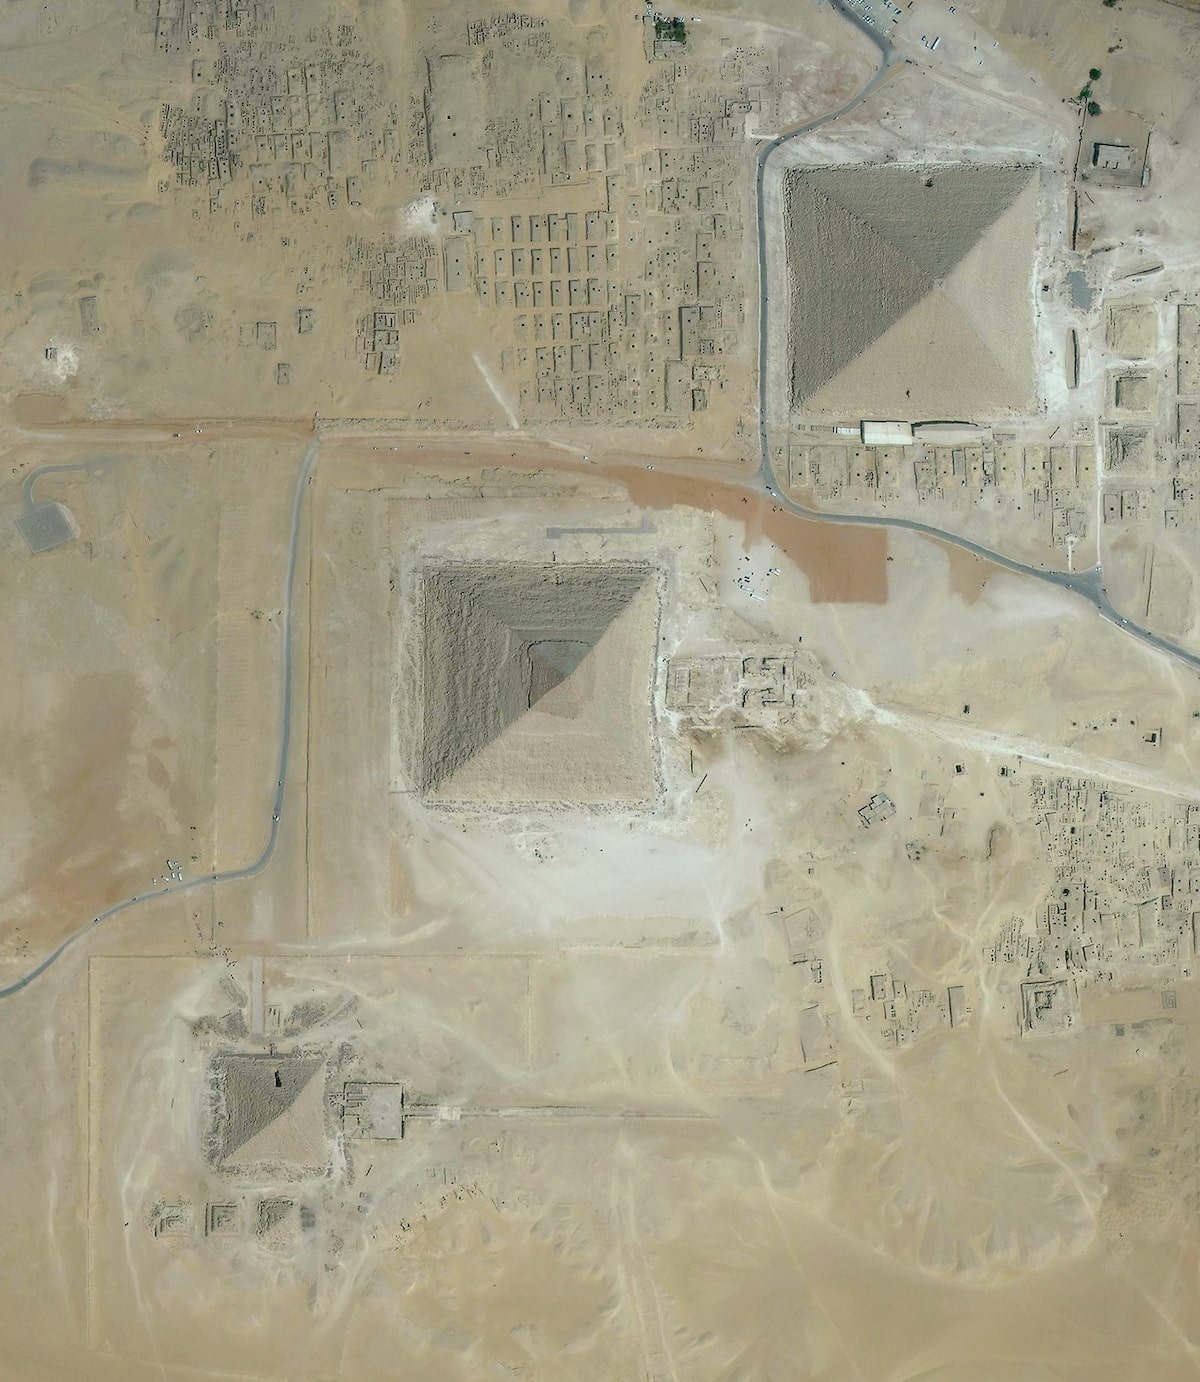 unesco world heritage sites great pyramids of giza by raul